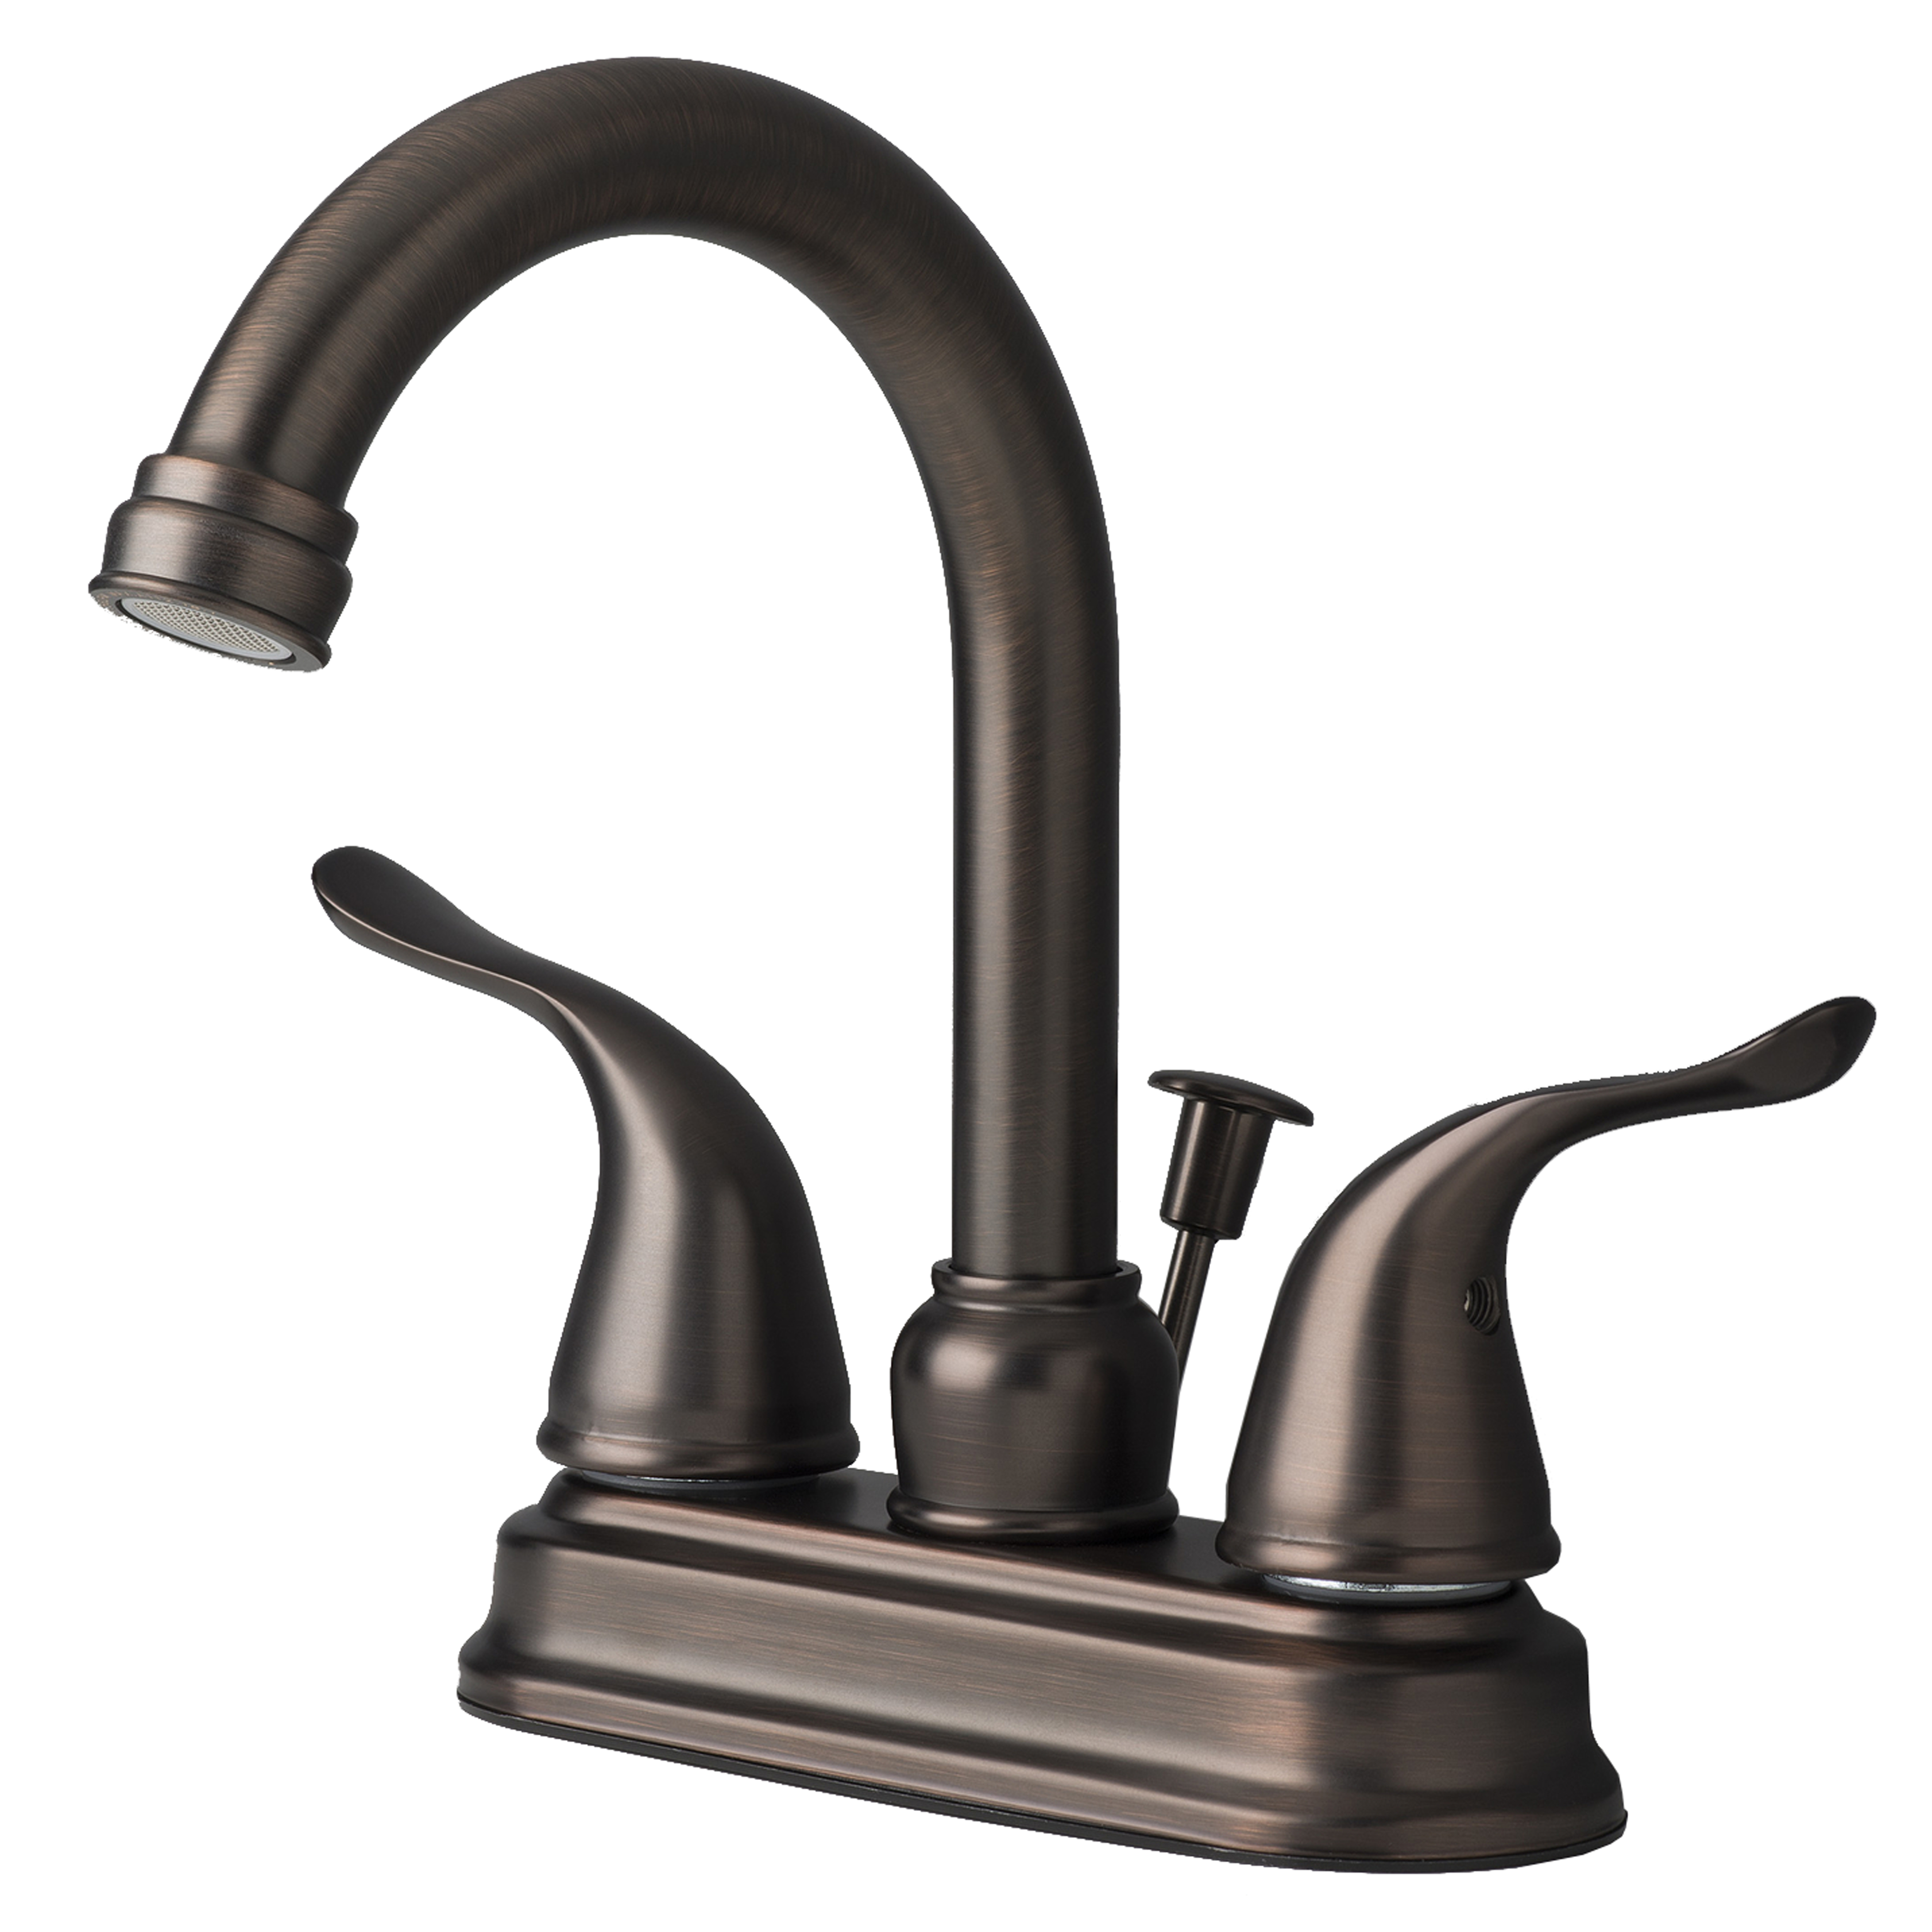 Contemporary Bathroom Vanity Sink 4 Centerset Lavatory Faucet Brushed Bronze Ebay